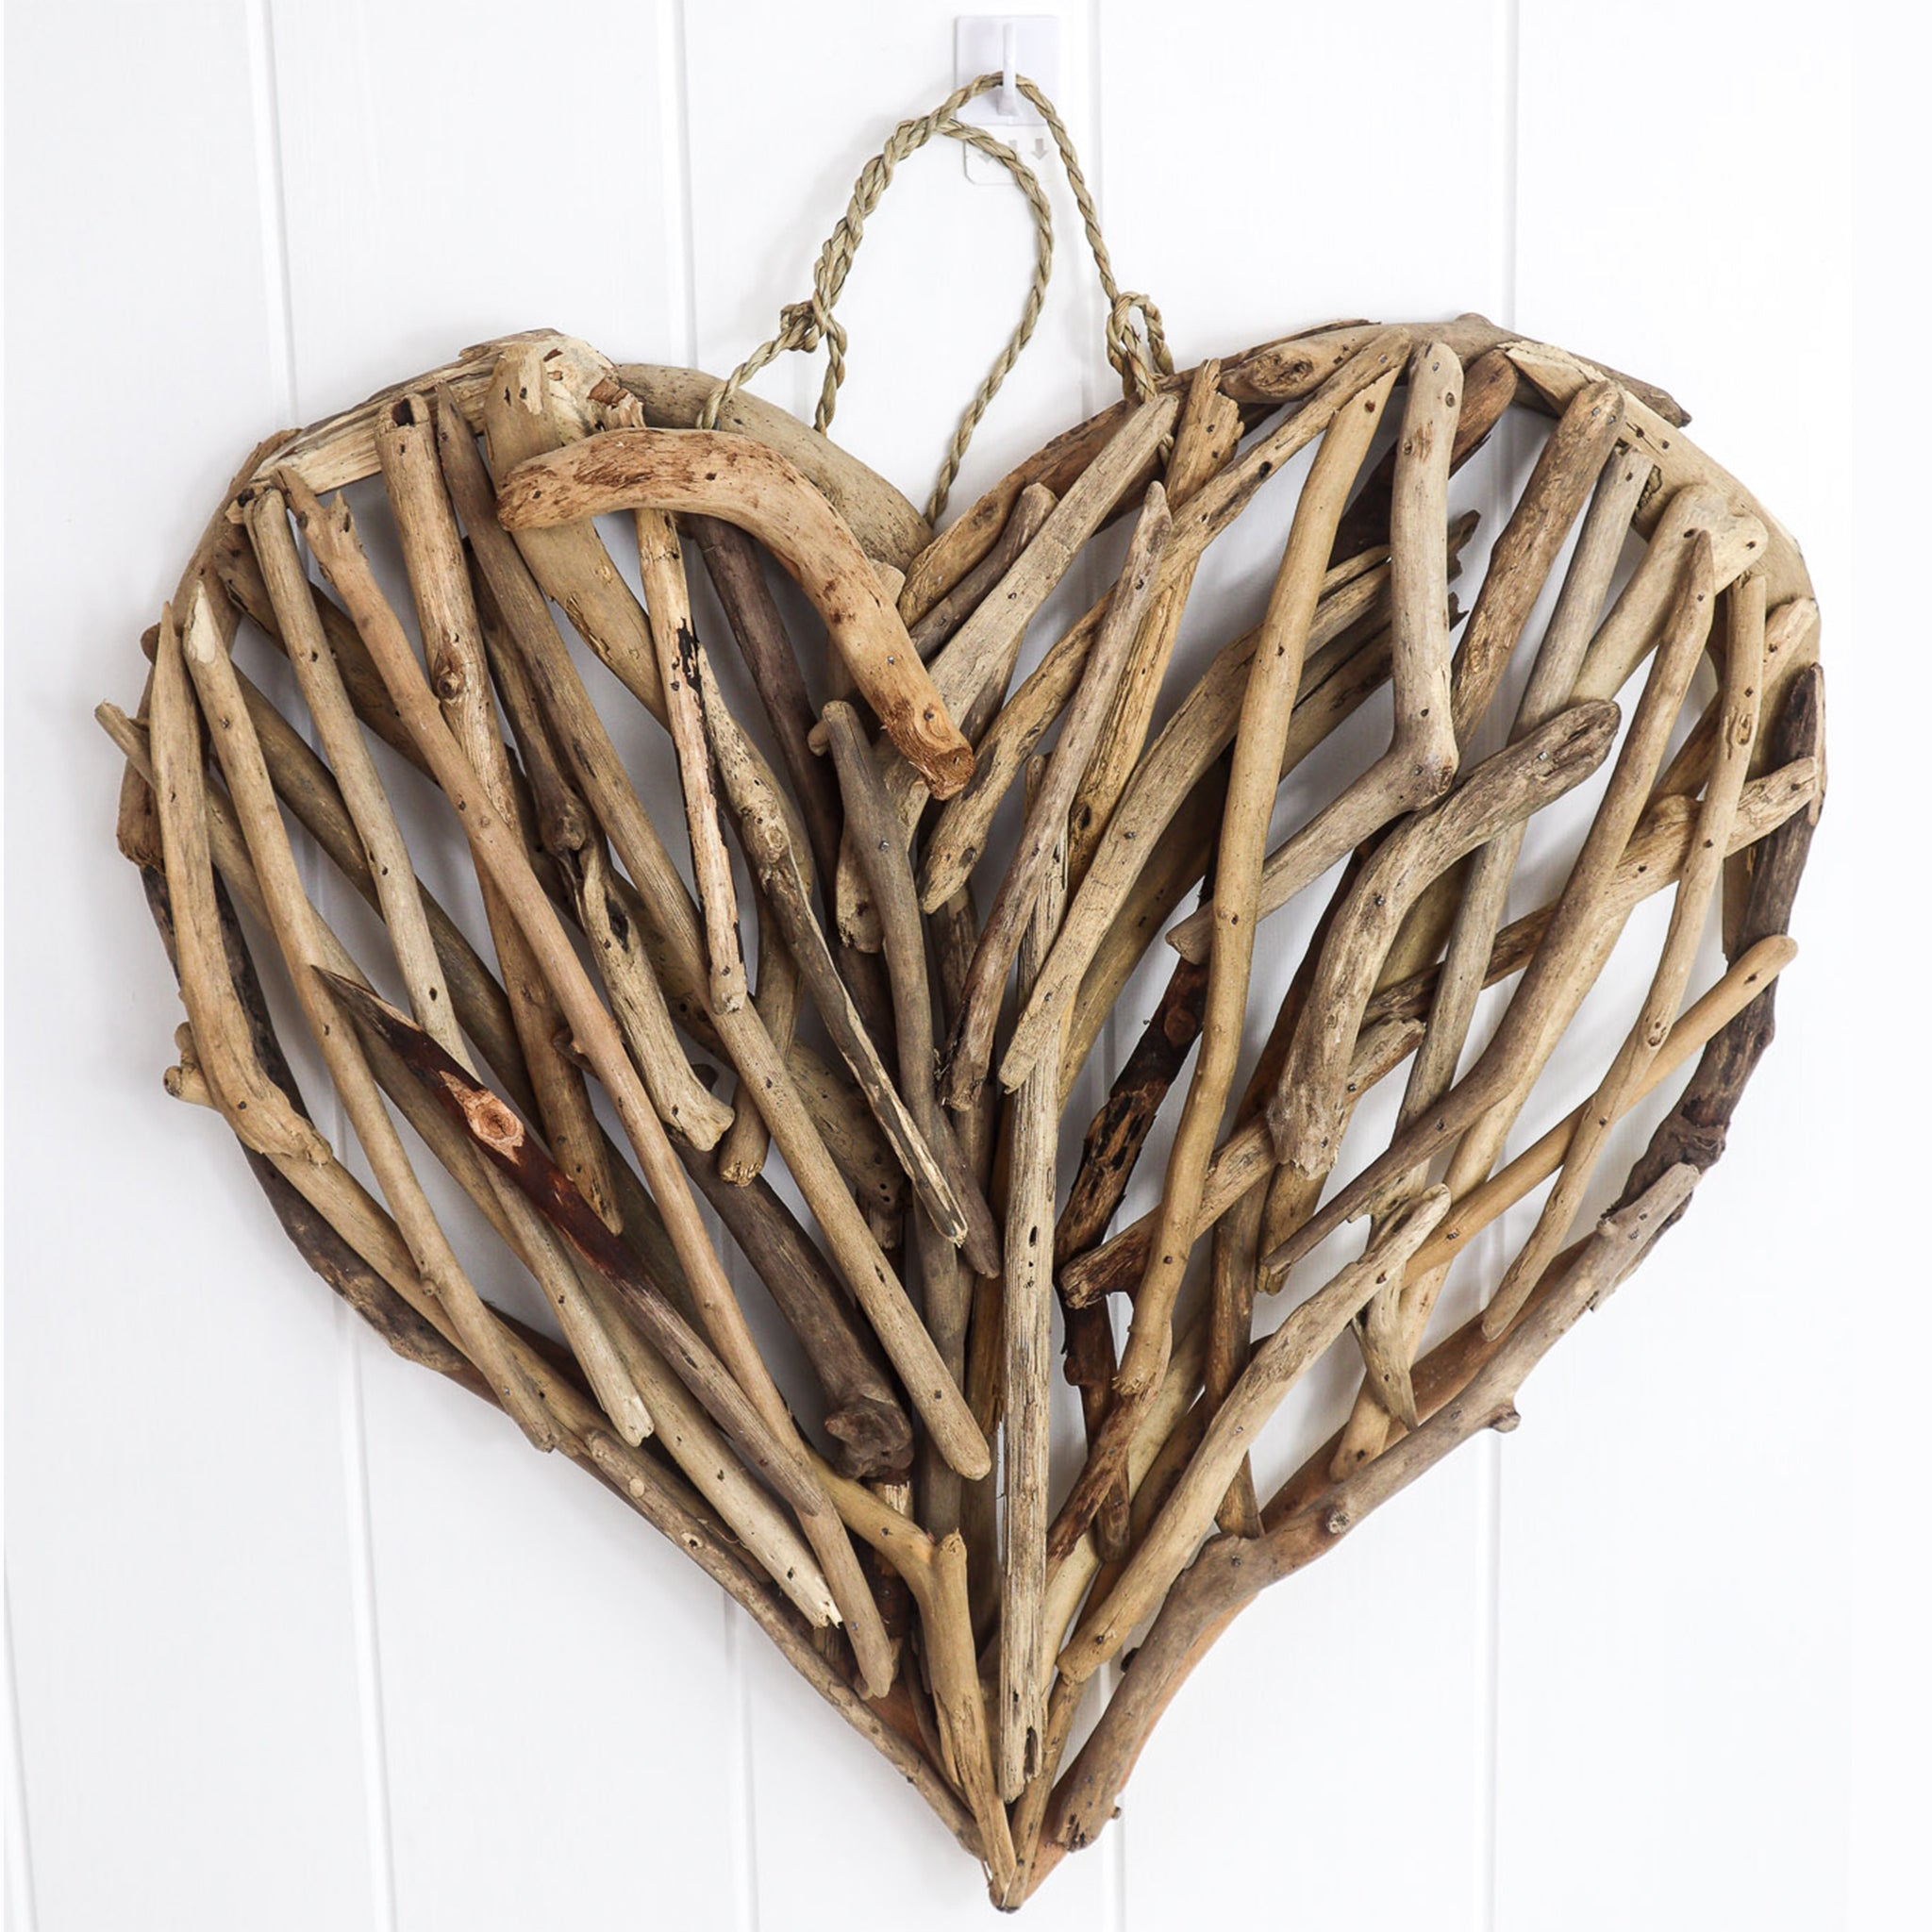 DRIFTWOOD HEART SHAPE WALL ART